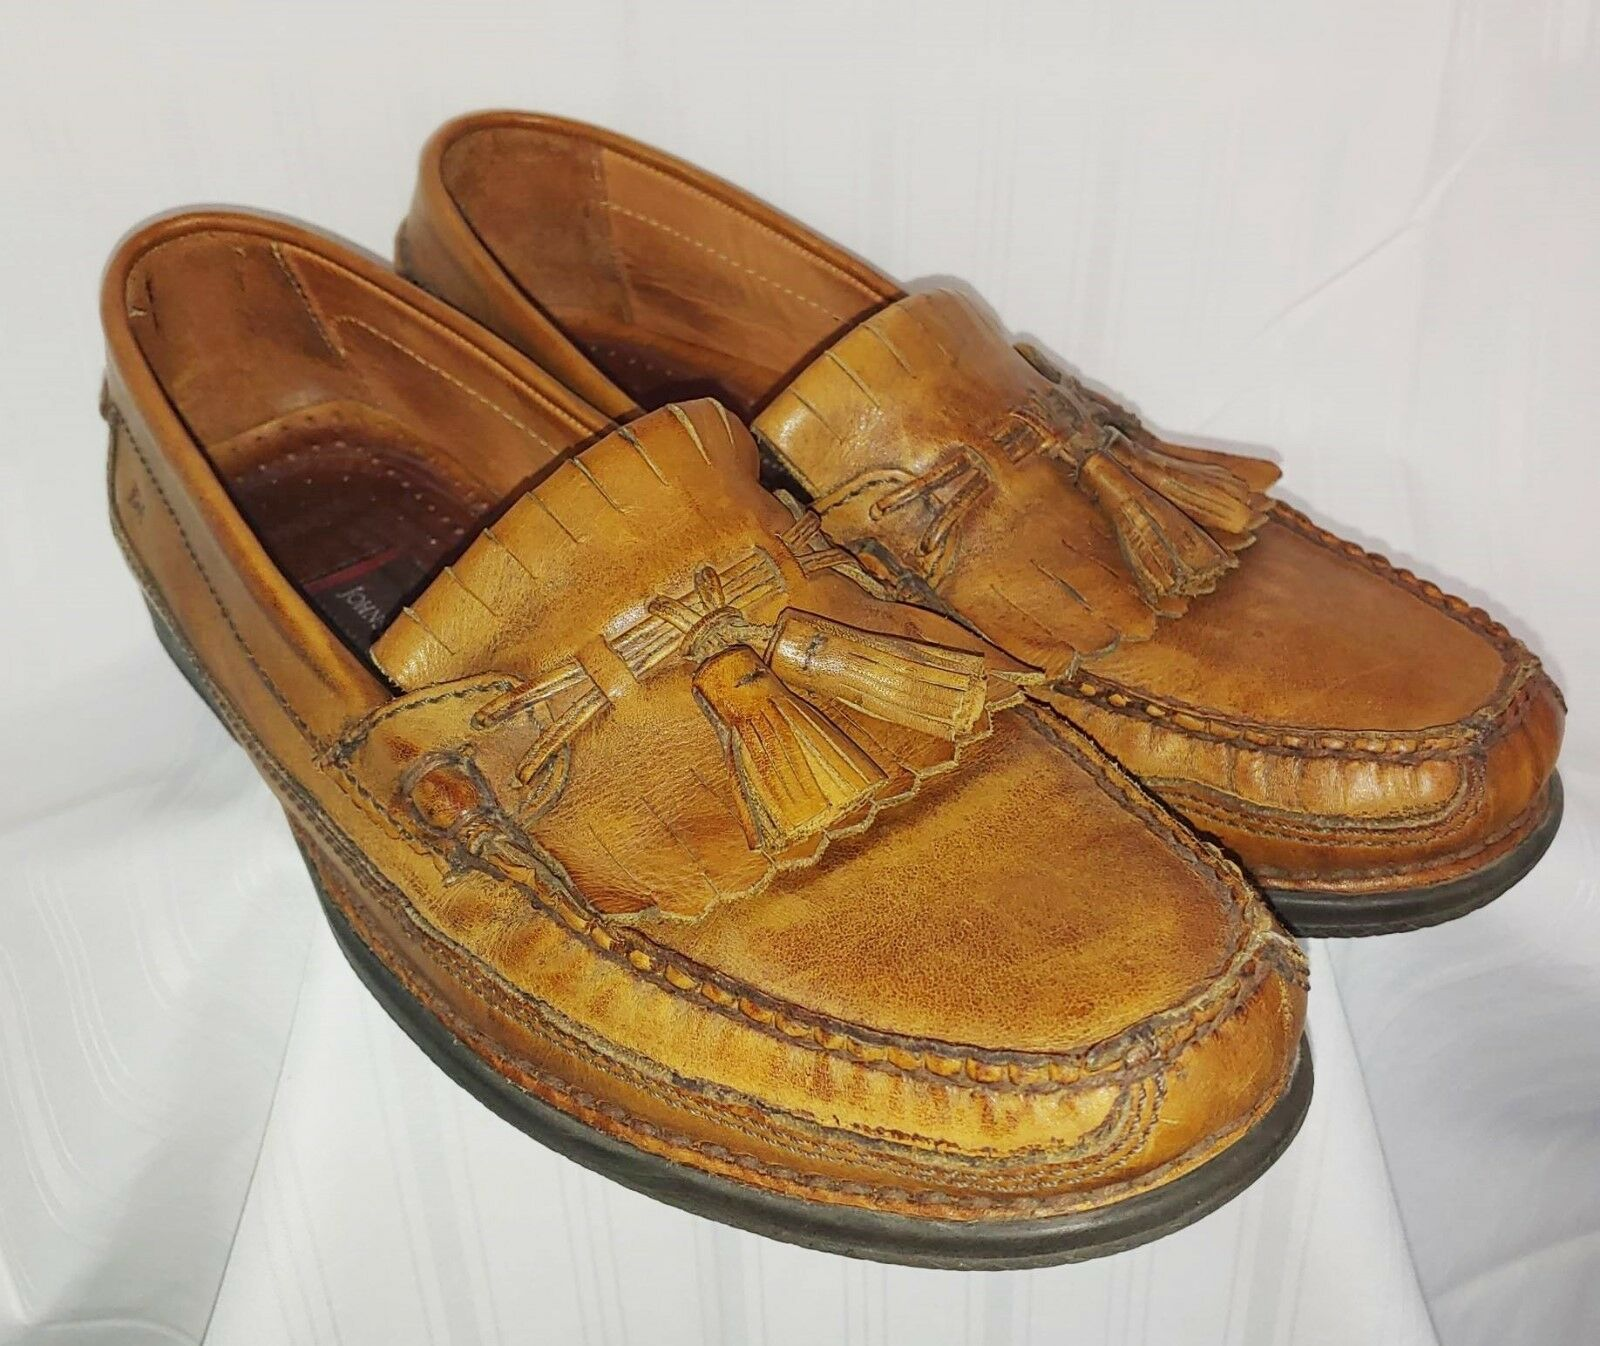 Johnston & Murphy 13M Tassel Fringed Loafers Tan Brown Leather mens BRAZIL